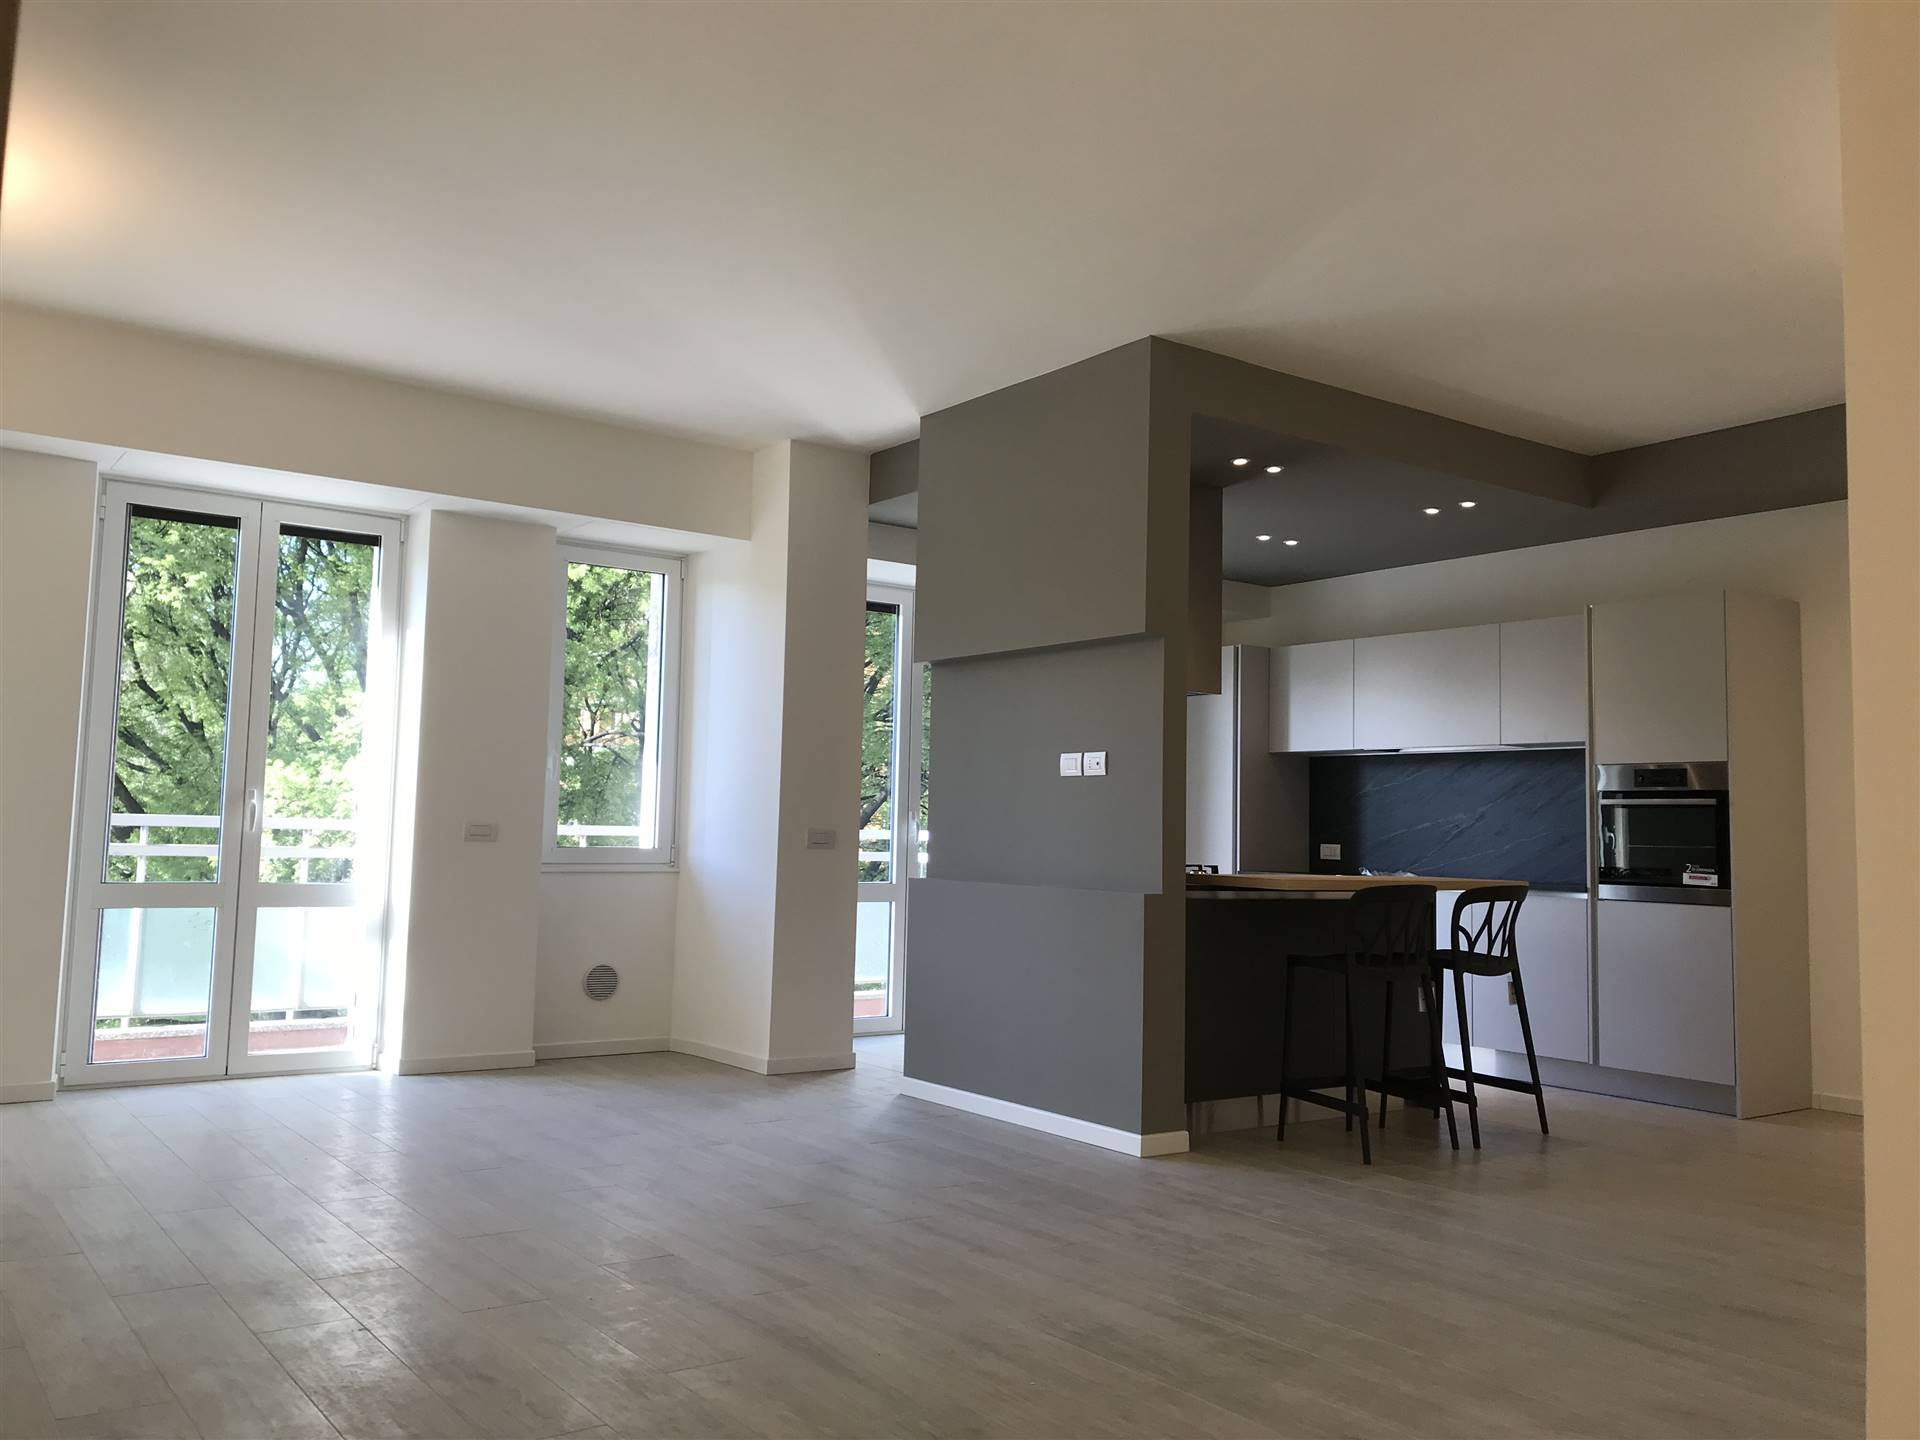 MARTINI, MILANO, Apartment for rent of 113 Sq. mt., Restored, Heating Centralized, Energetic class: G, Epi: 171,04 kwh/m2 year, placed at 2° on 8, composed by: 3 Rooms, Show cooking, , 2 Bedrooms, 2